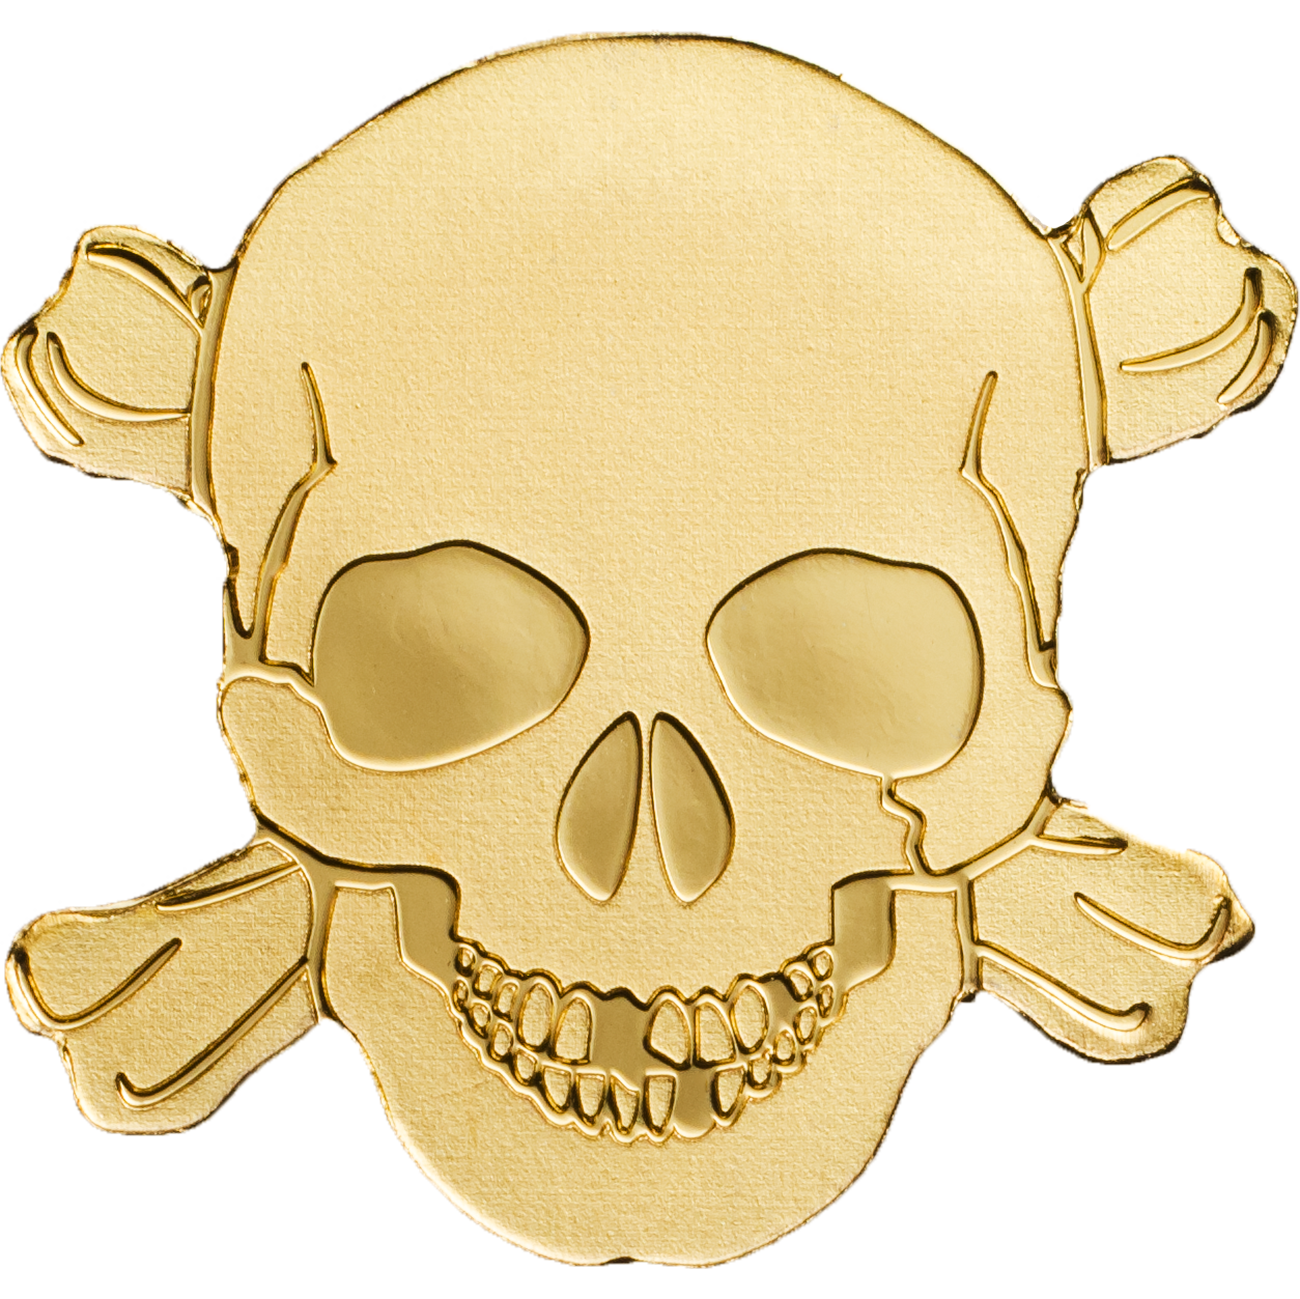 2017 0 5 Gram Palau Golden Pirate Skull 9999 Gold Coin Lpm